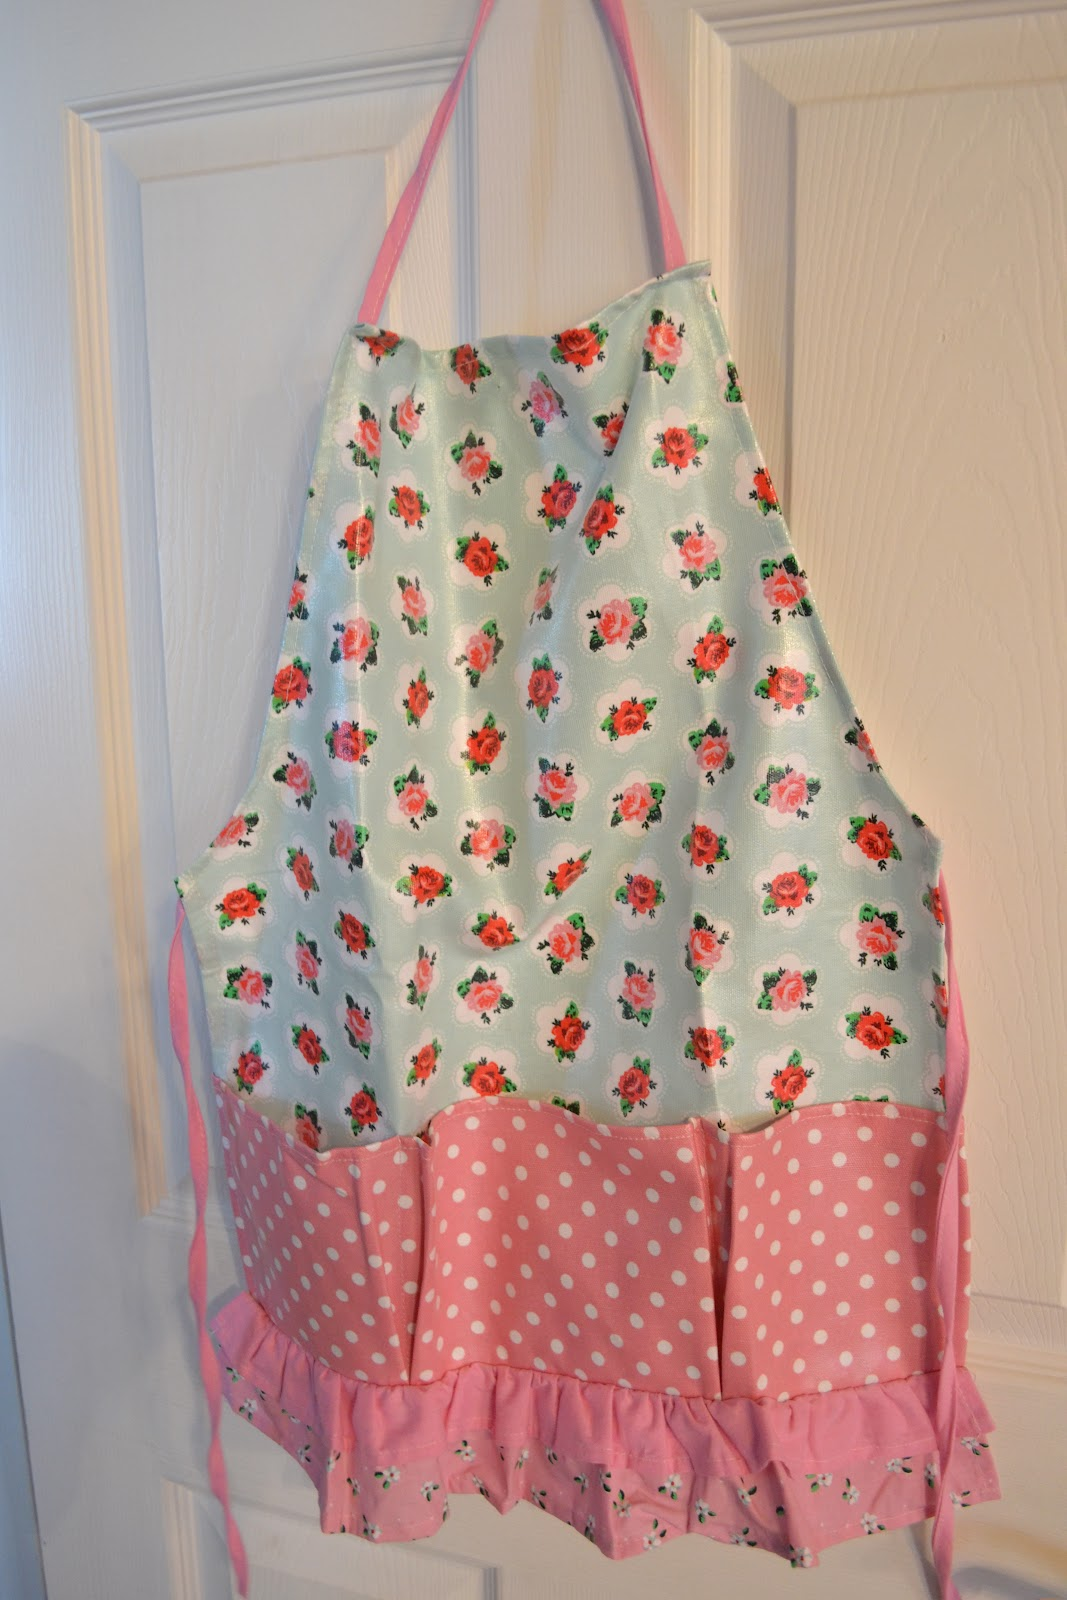 White apron joann fabrics - I Found This Cath Kidston Looking Apron At Joann Fabrics I Bought Two One For My Daughter And One For Her Friend Mary Scott Her Mom Has A Garden